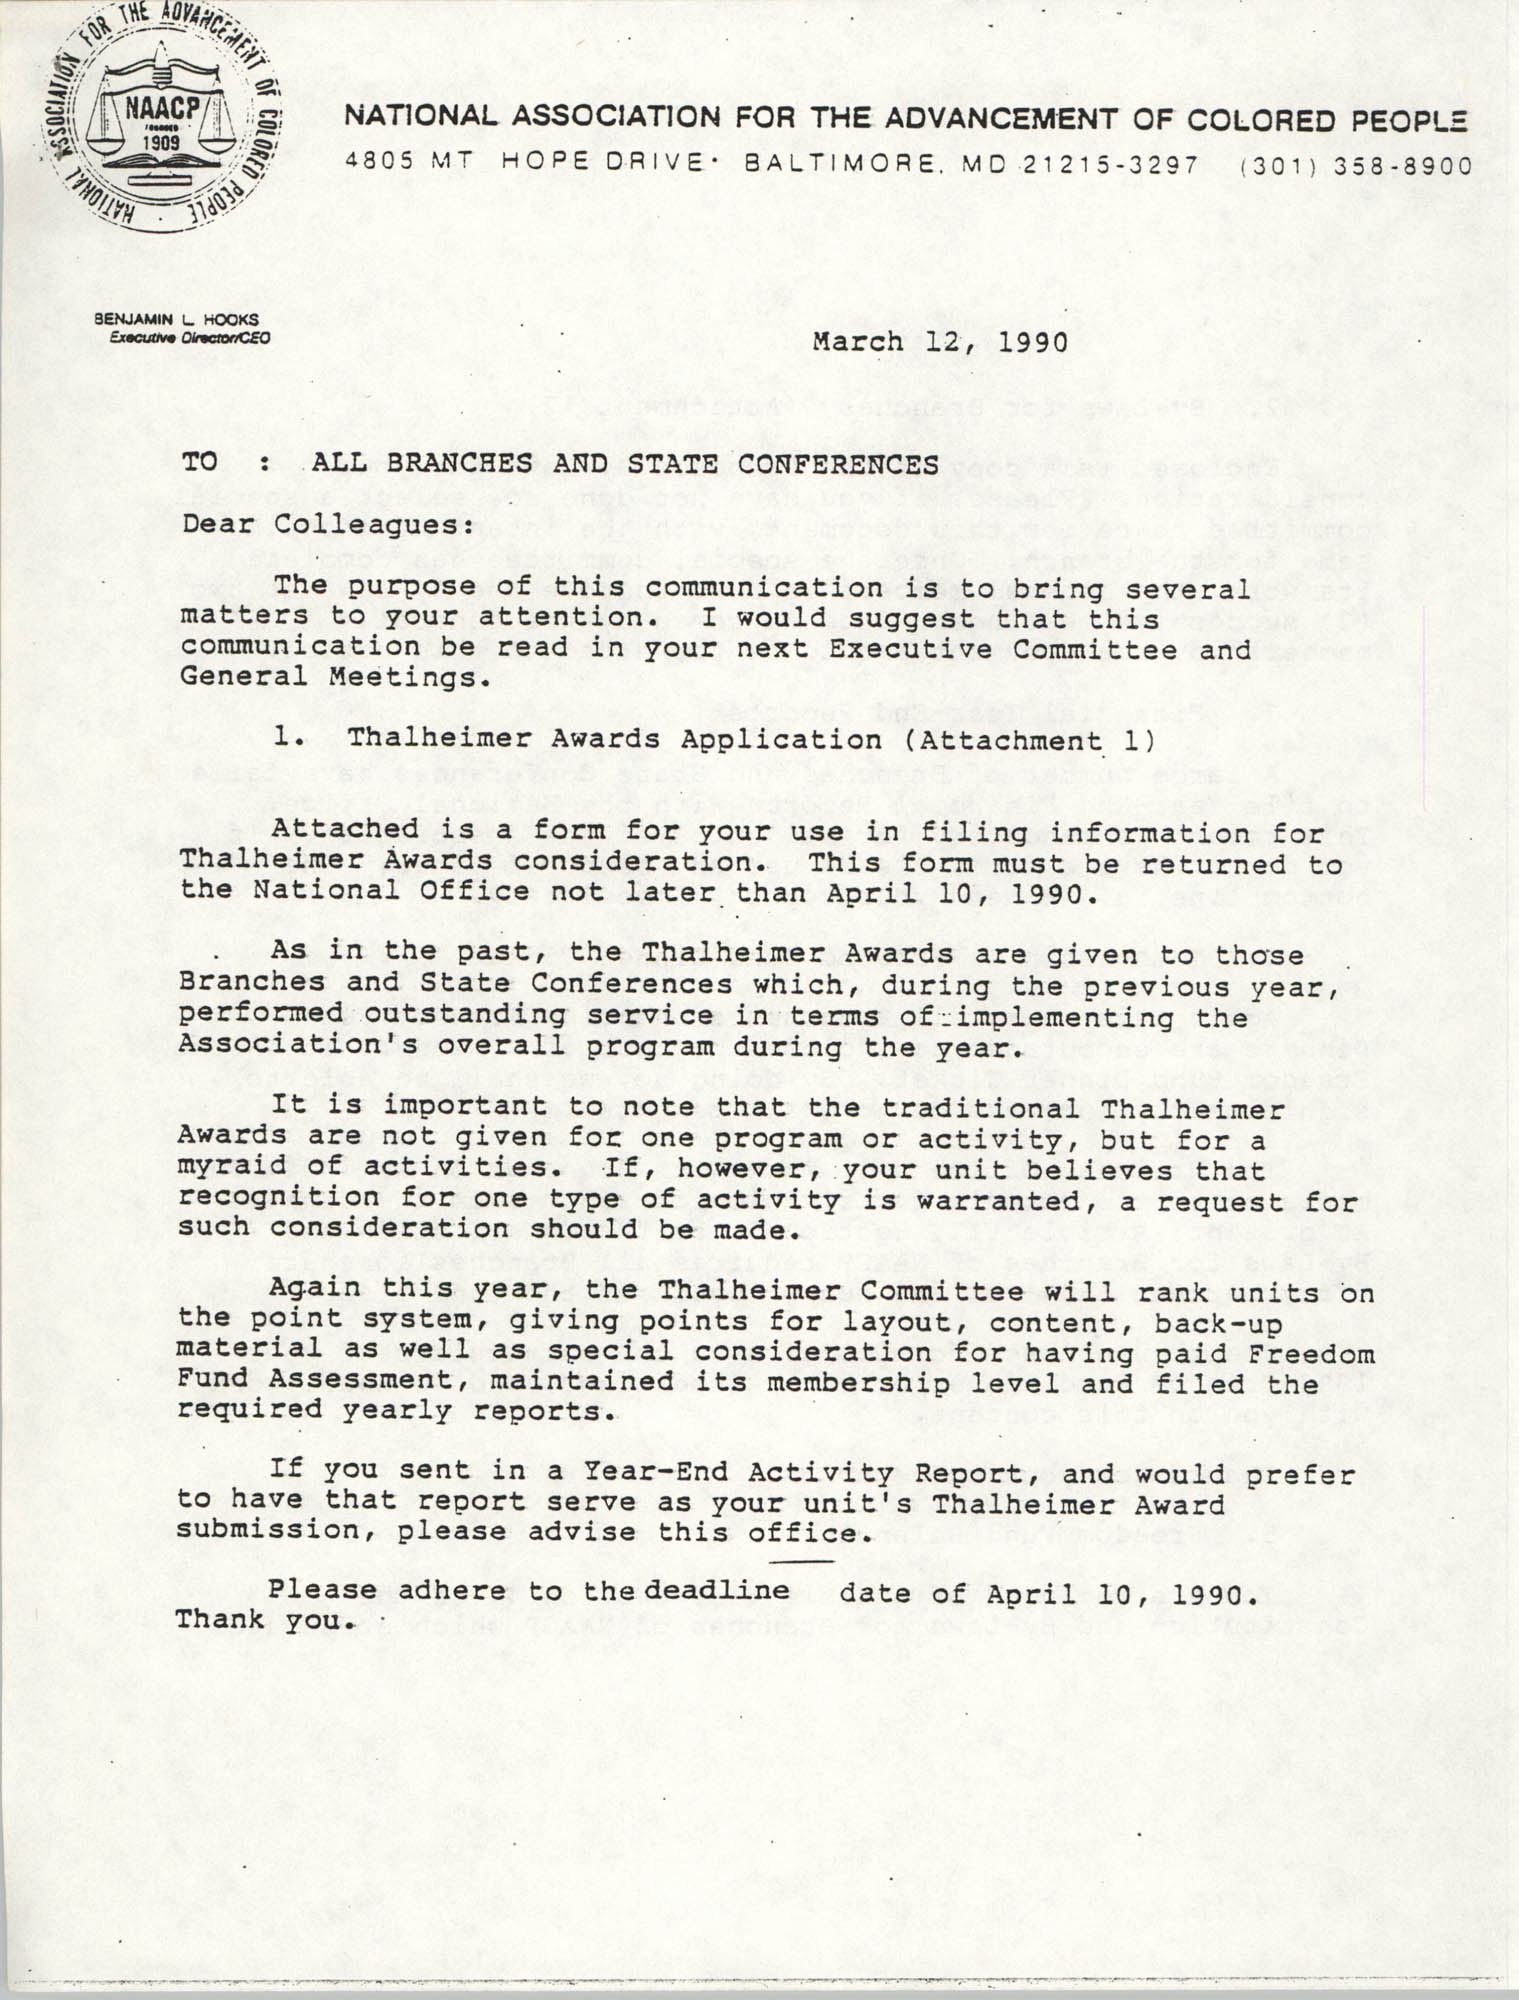 NAACP Memorandum, March 12, 1990